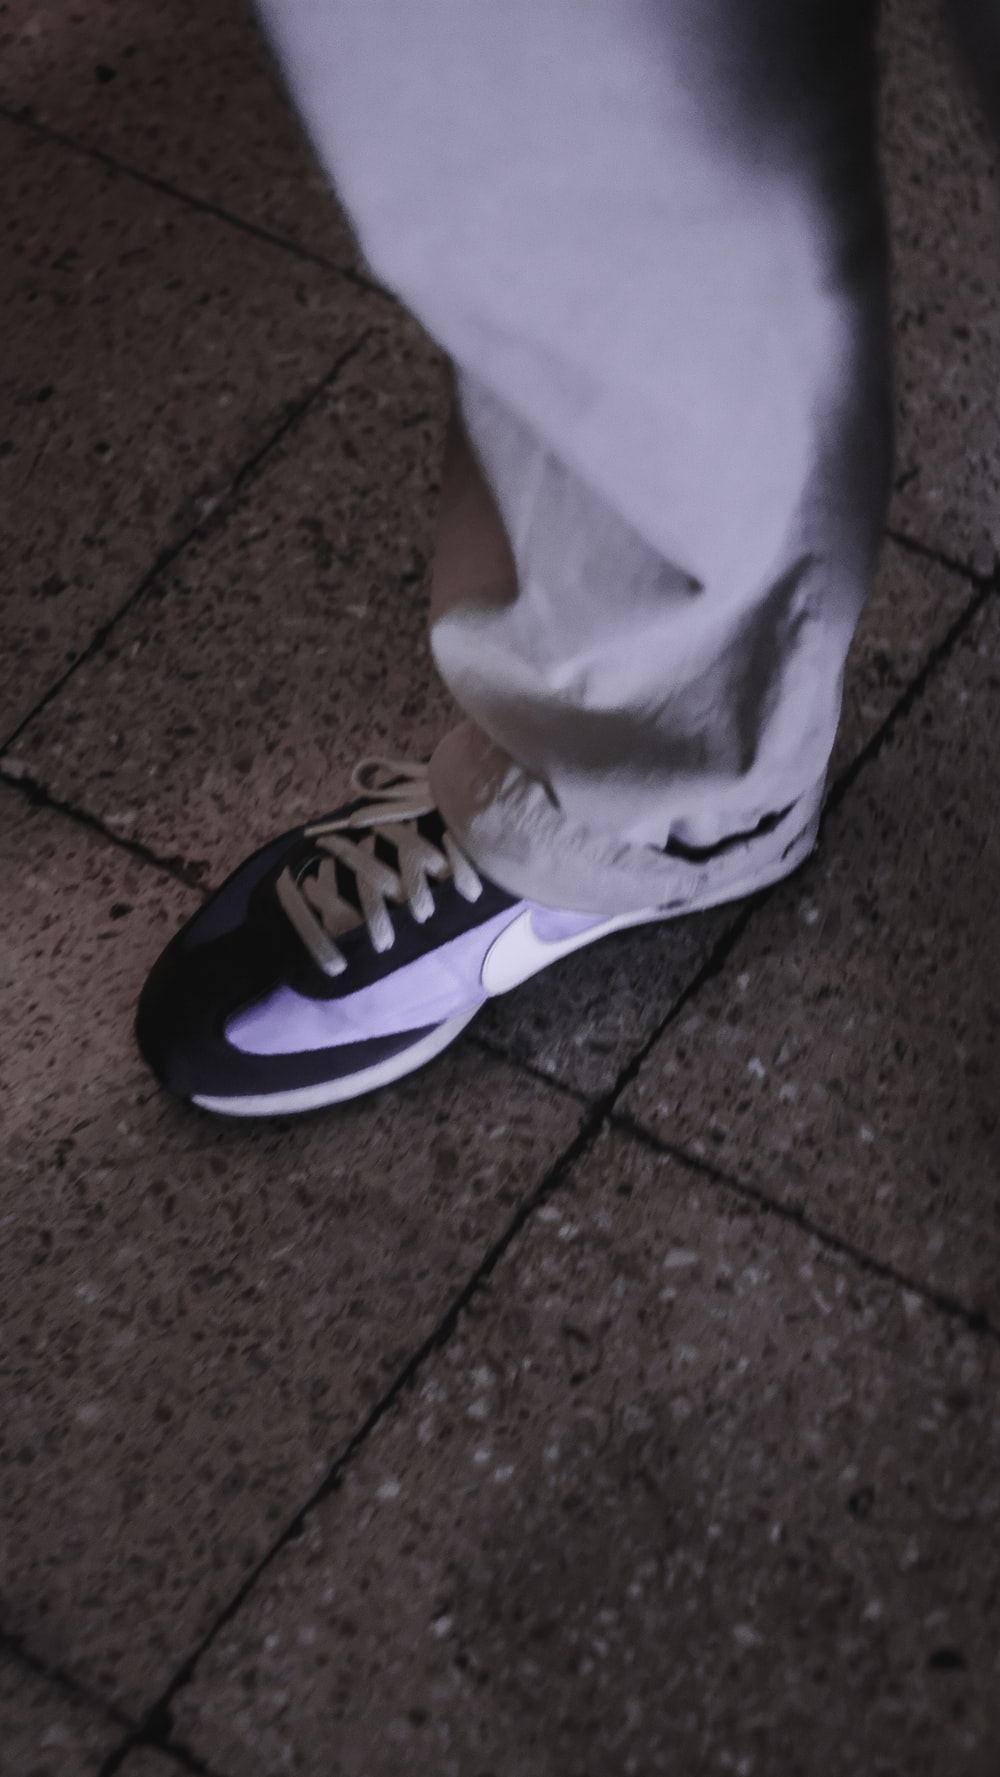 person wearing black and white nike sneakers